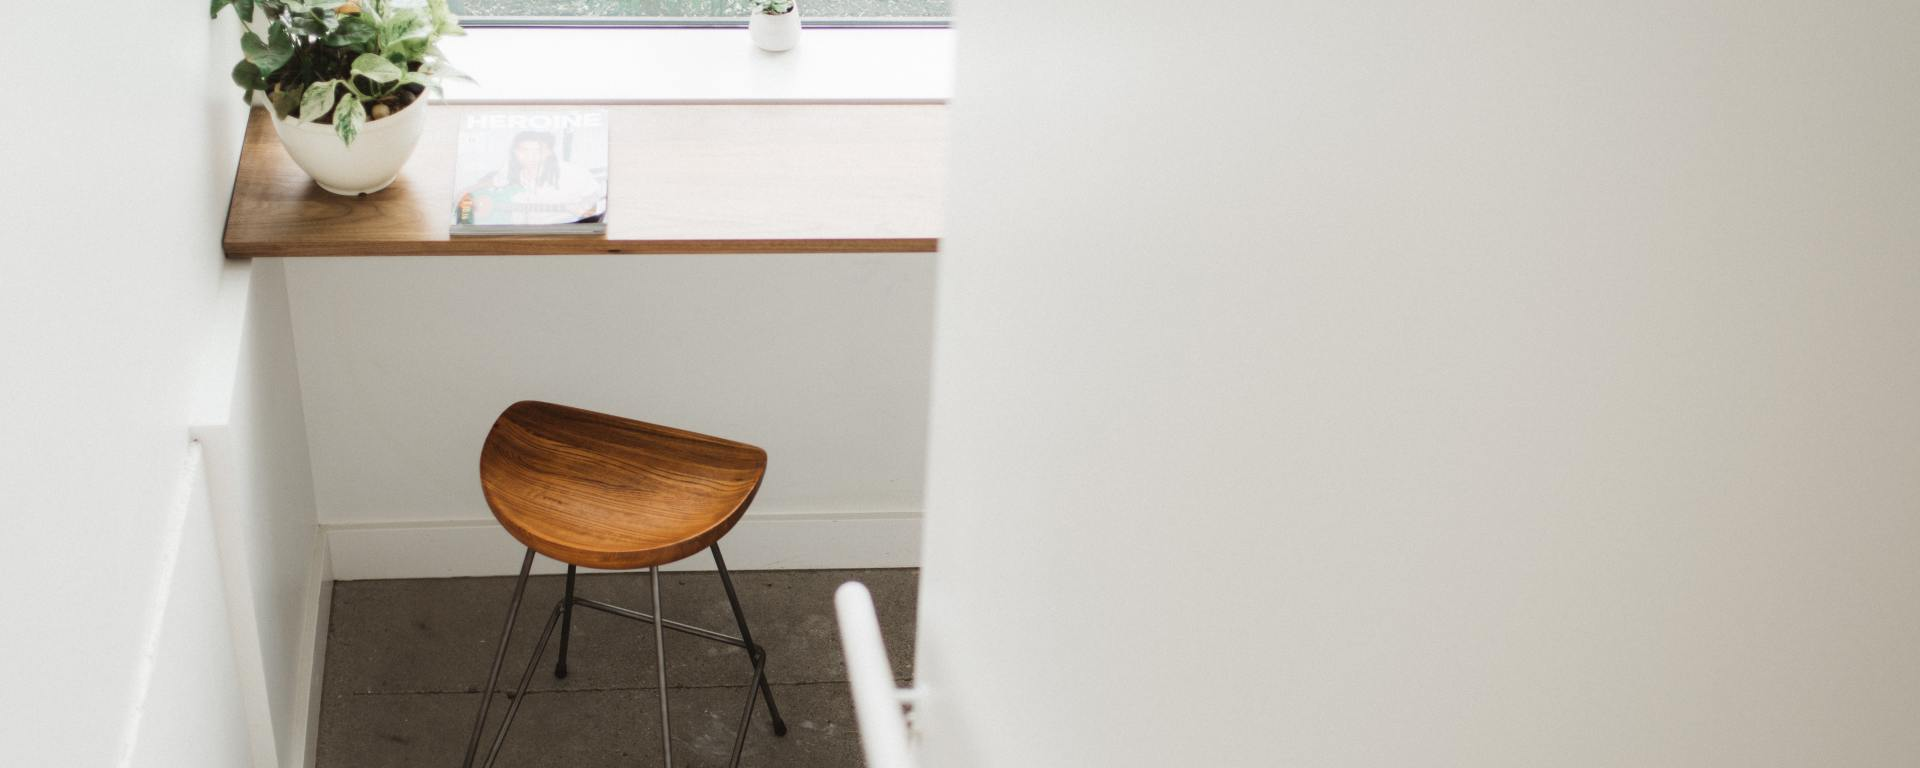 An image of a small wooden stool at a breakfast bar, with a view looking out through a window.